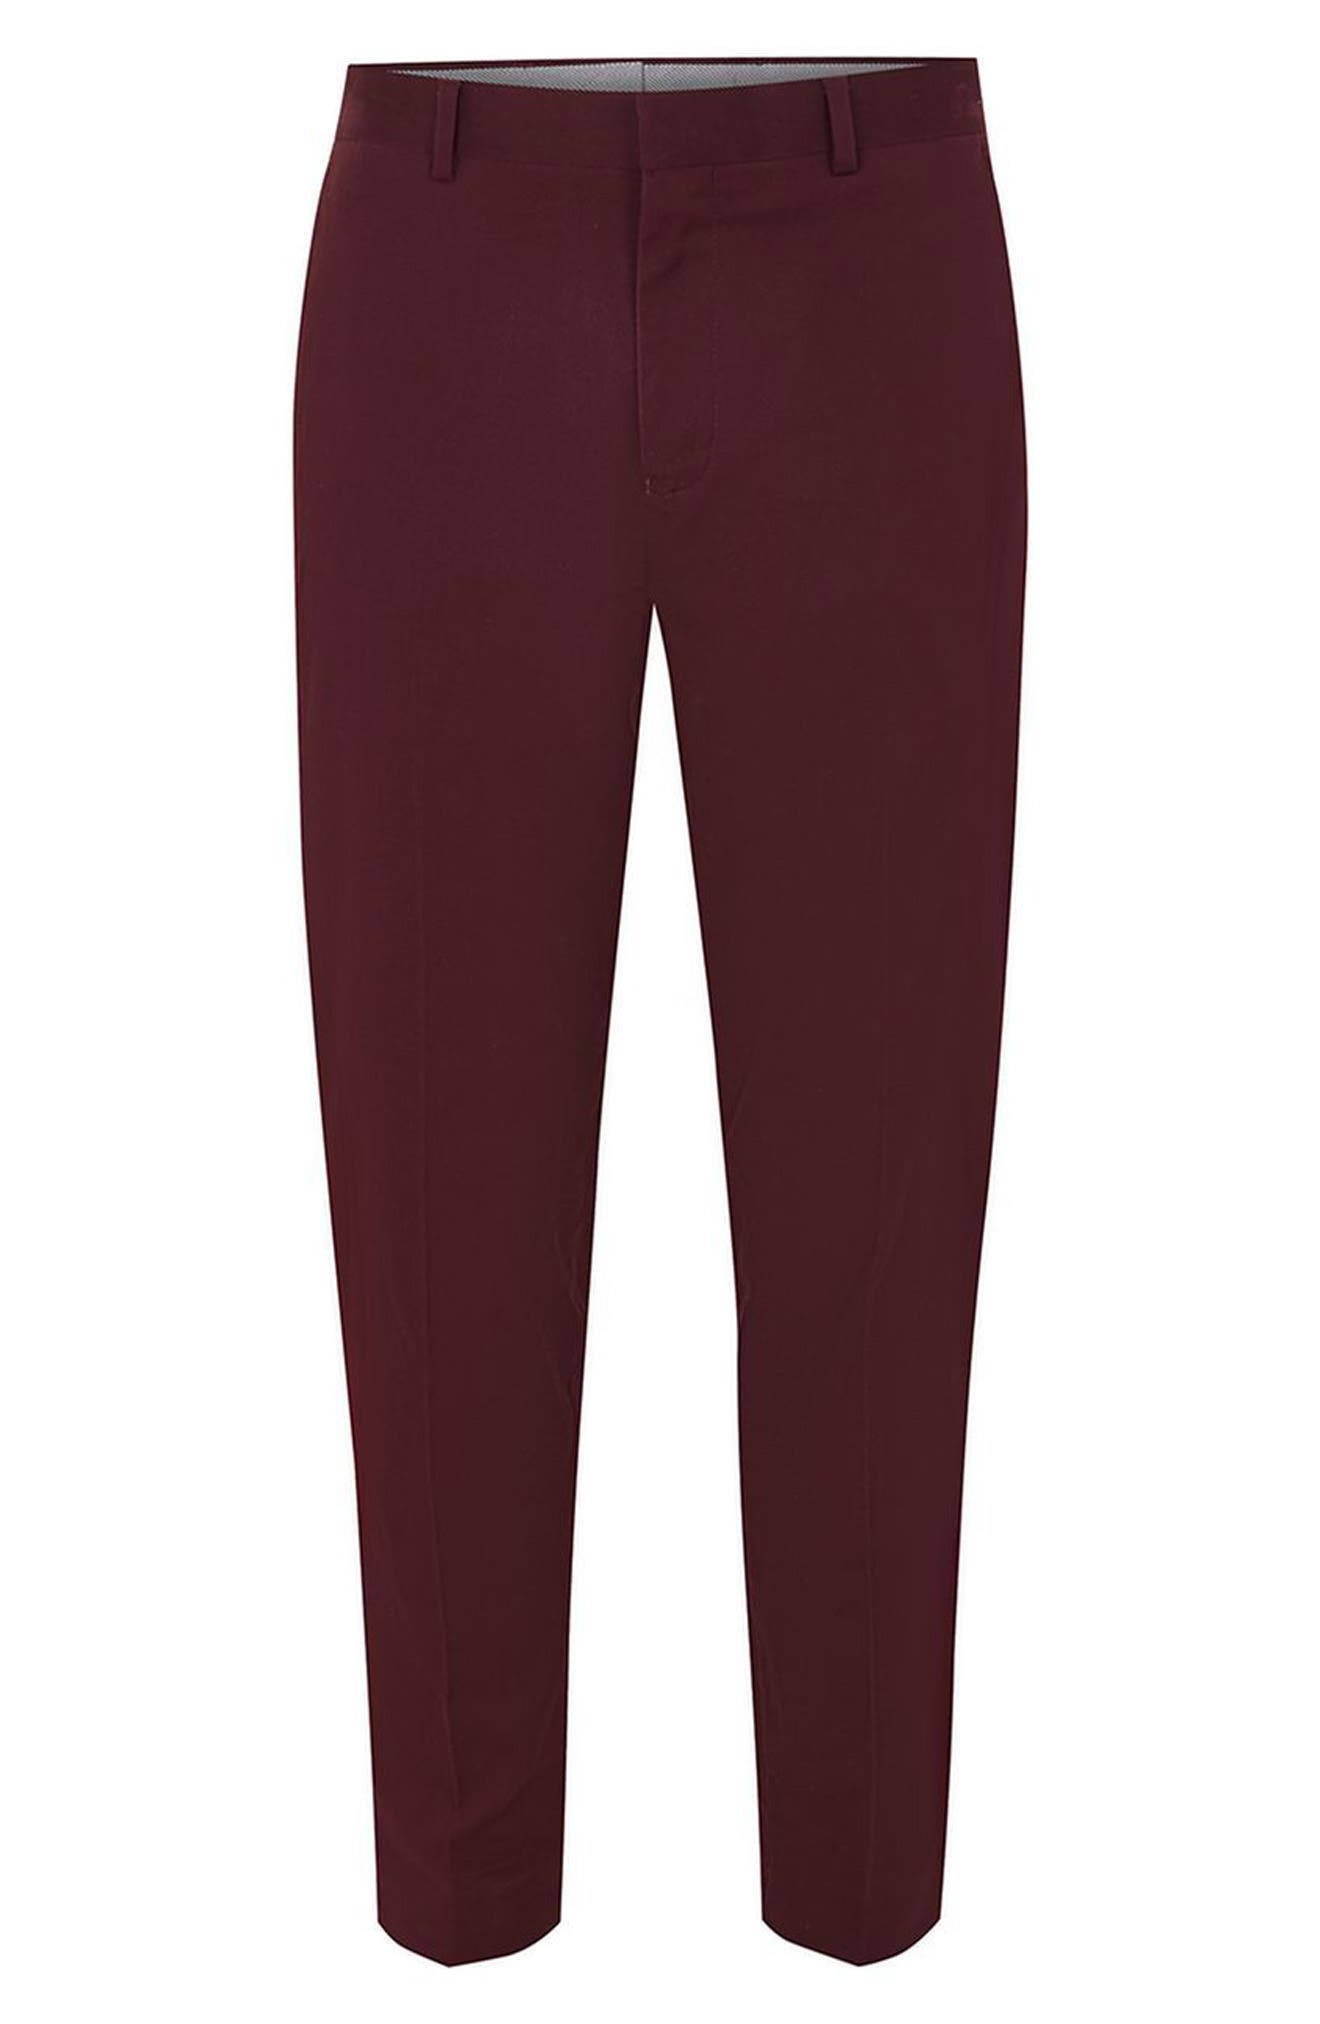 Twill Tapered Trousers,                             Alternate thumbnail 8, color,